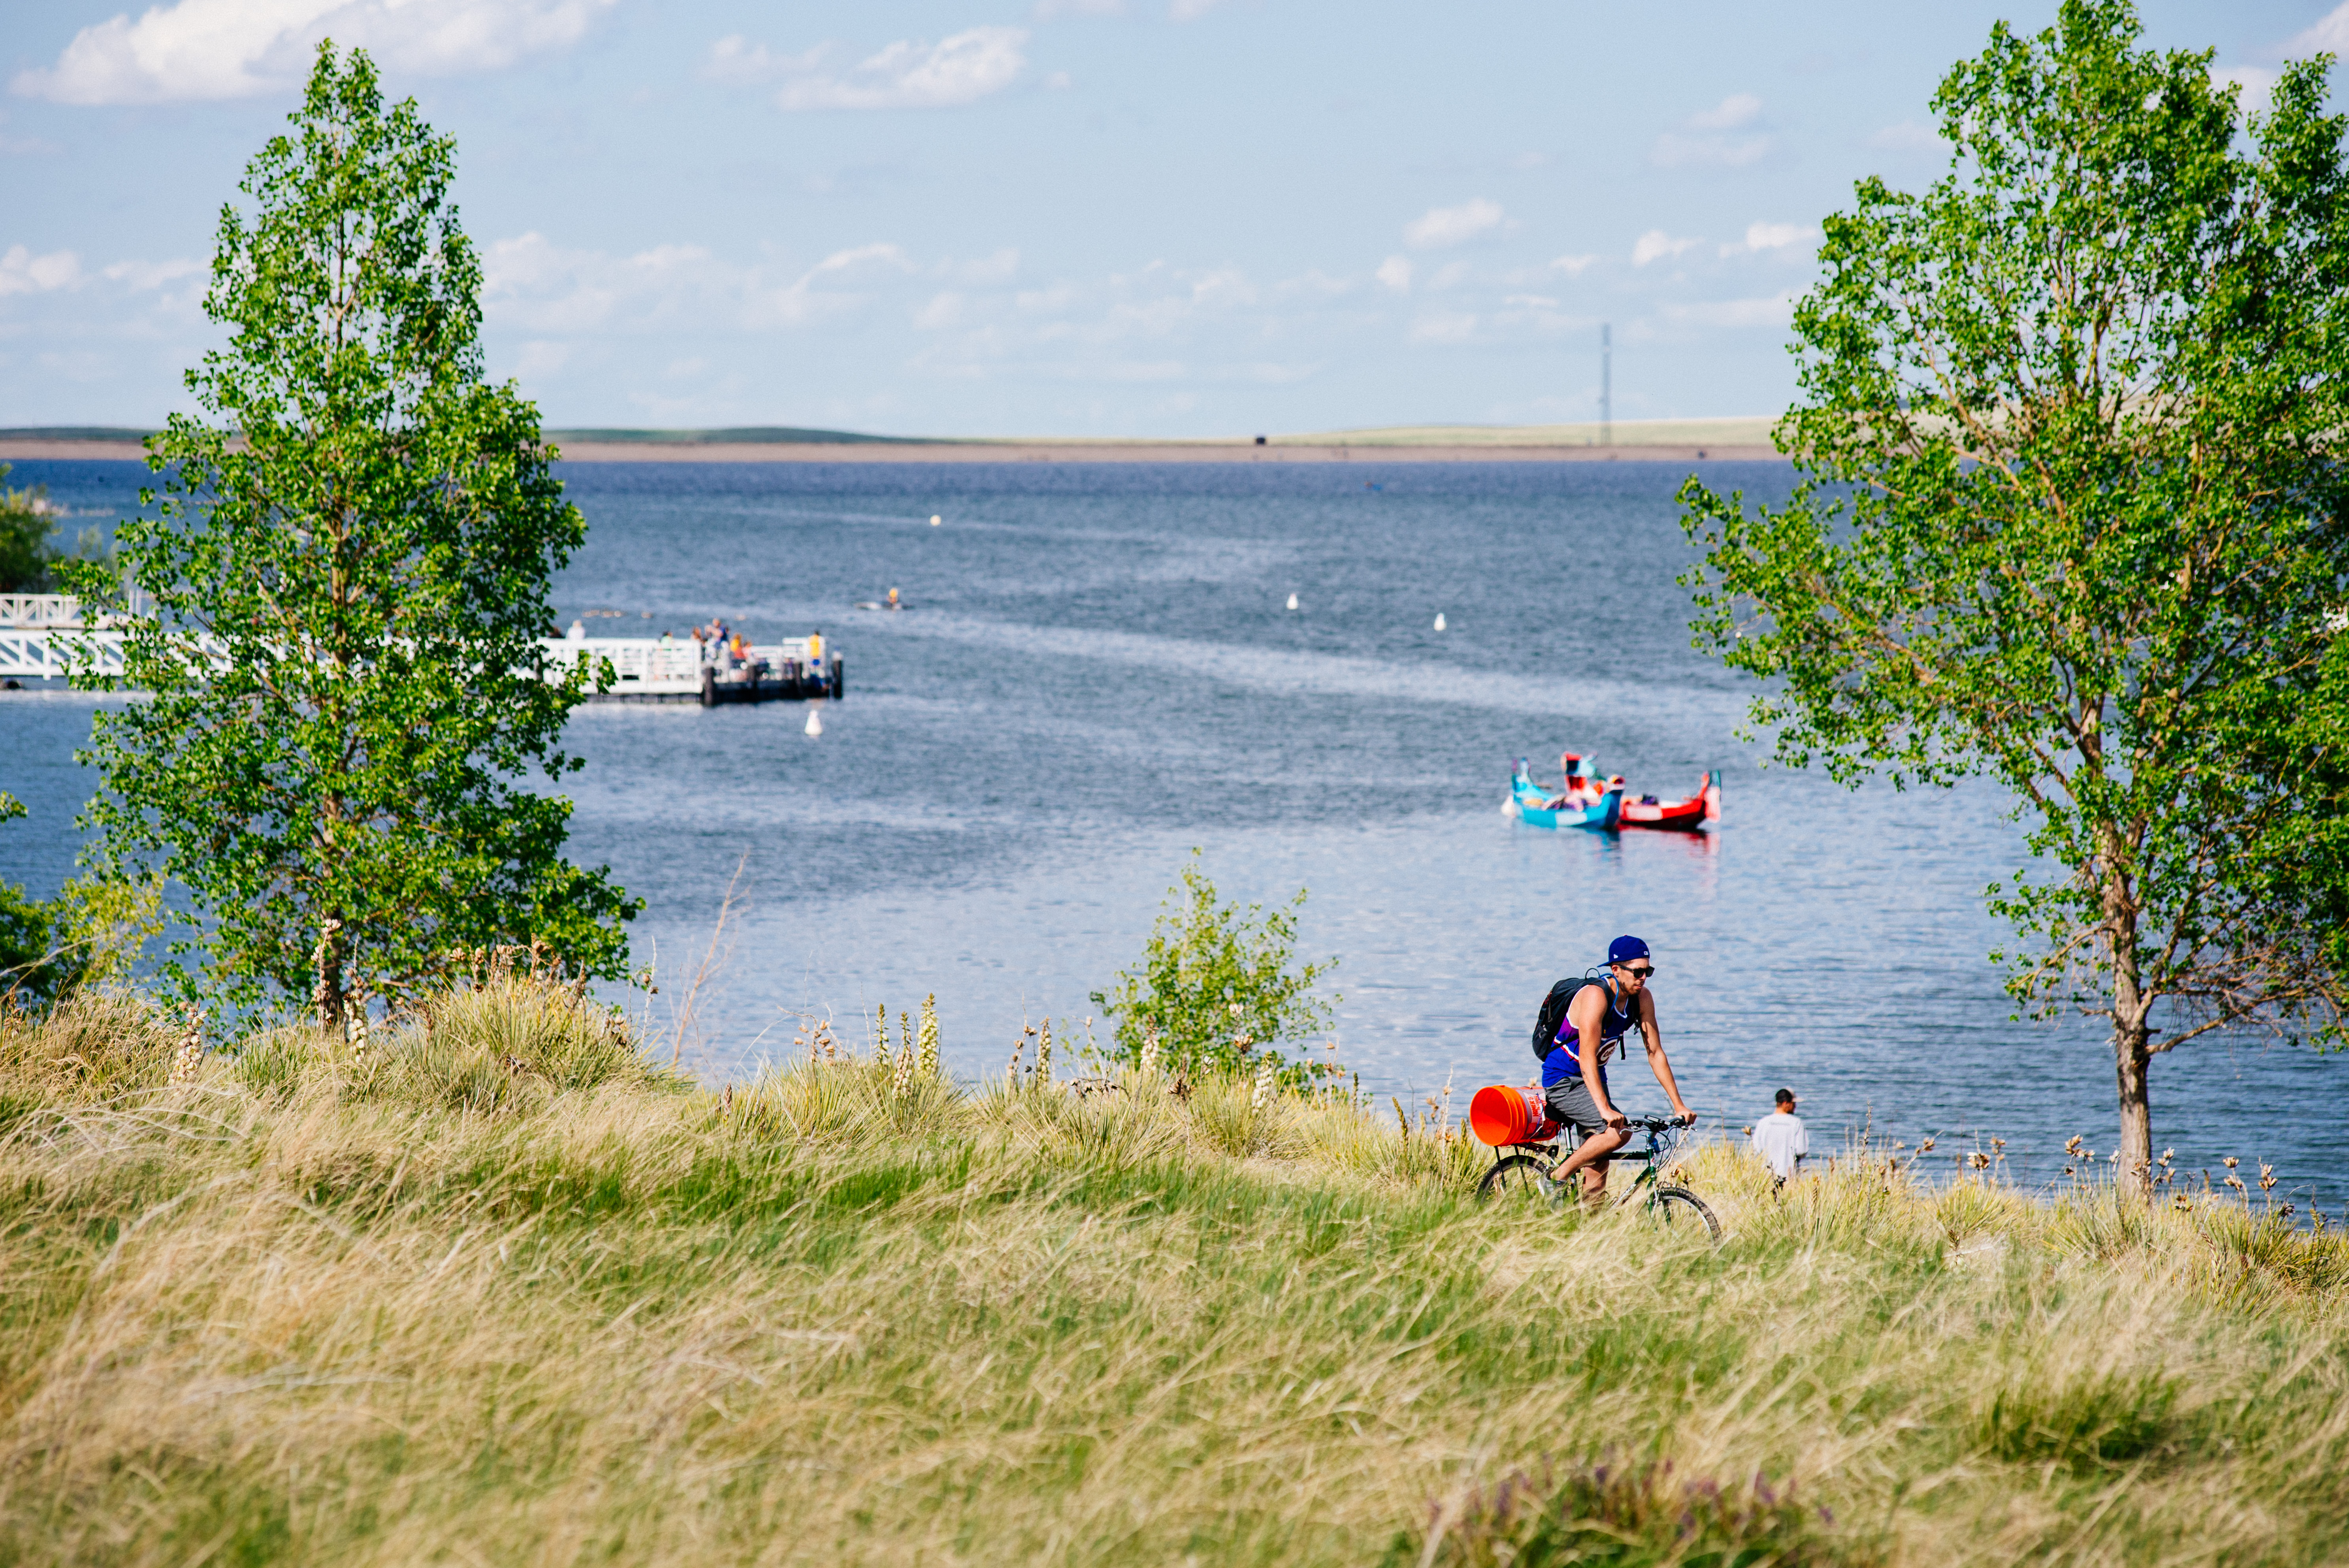 Minutes from Aurora Reservoir with Swim Beach, Fishing, Paddle Boards, and Canoes